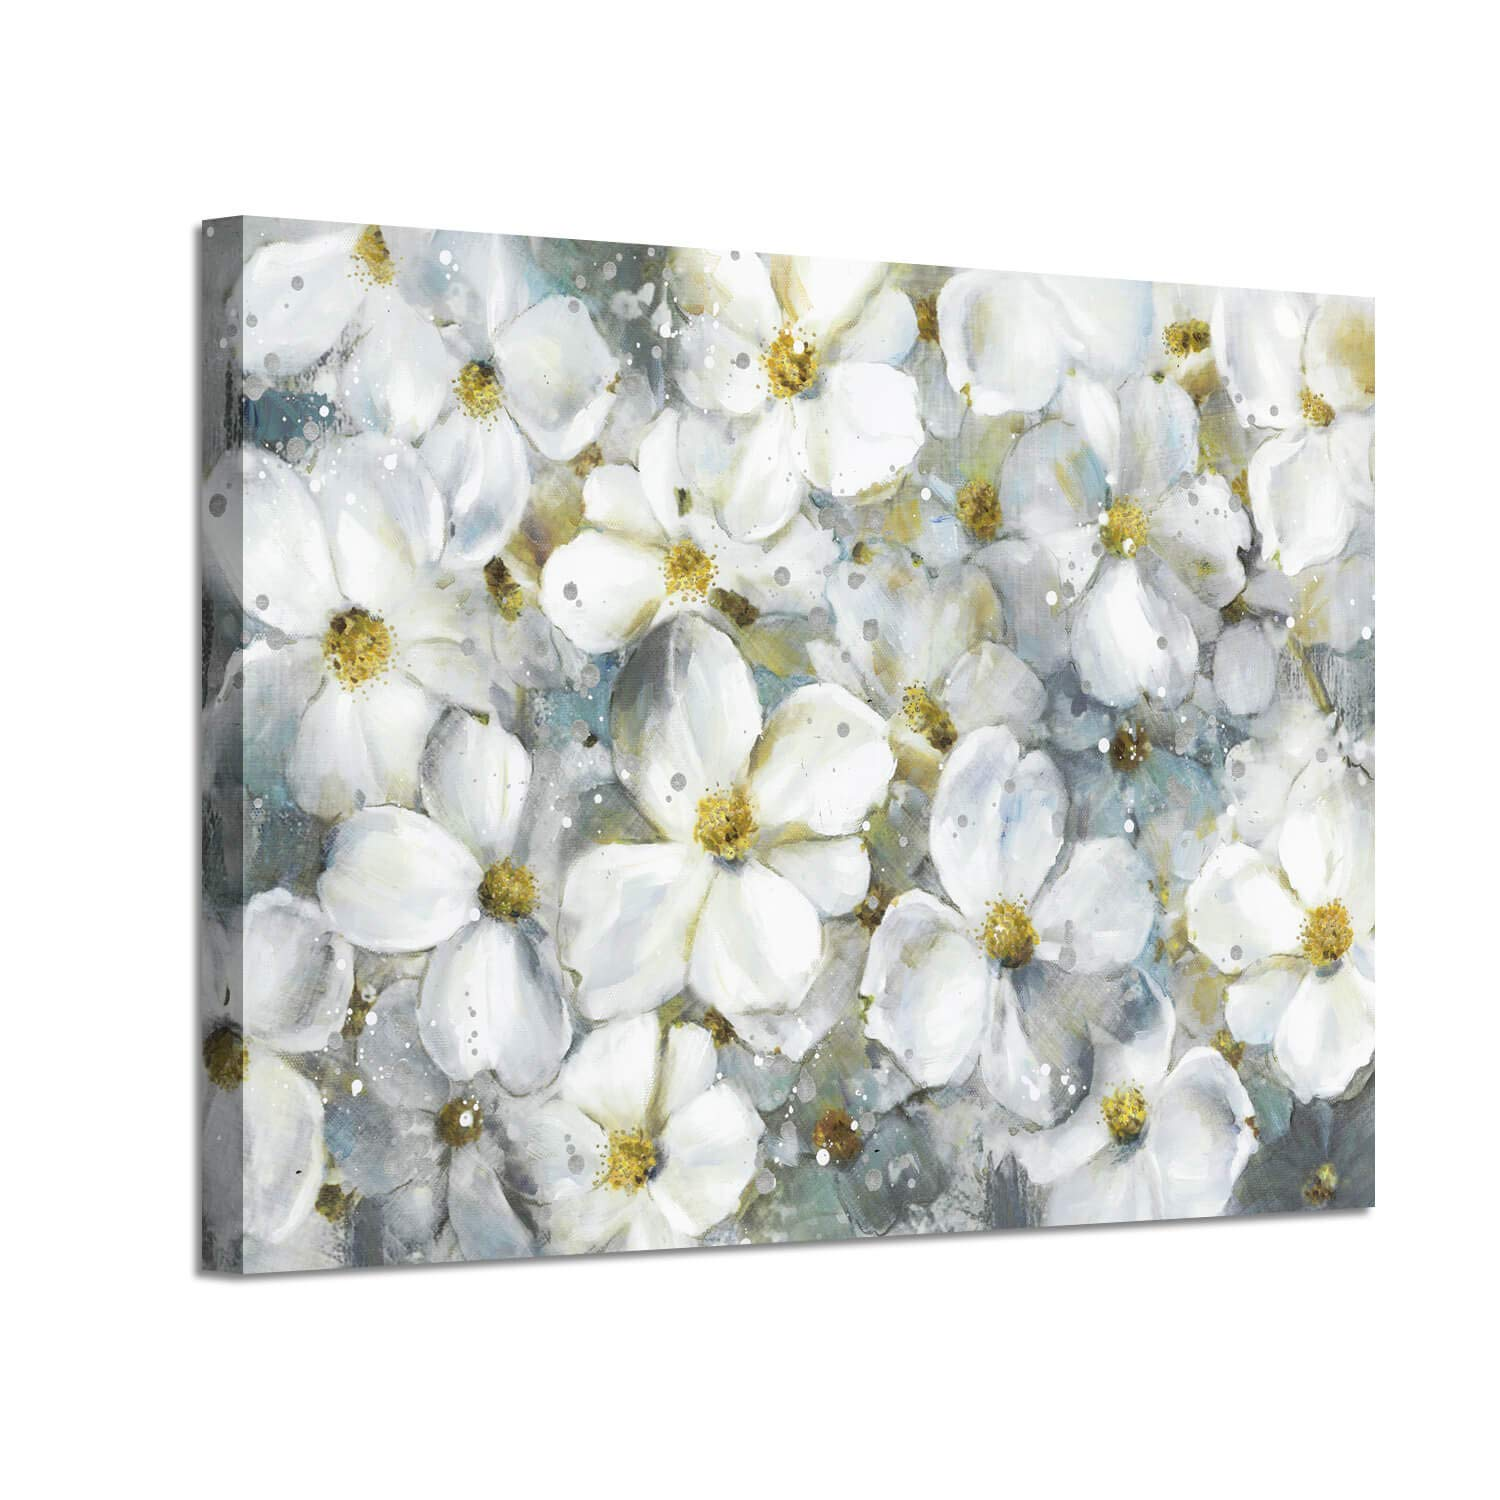 Abstract Flower Picture Canvas Art White Bloom Gold Foil Print for Wall Decor Artistic Path